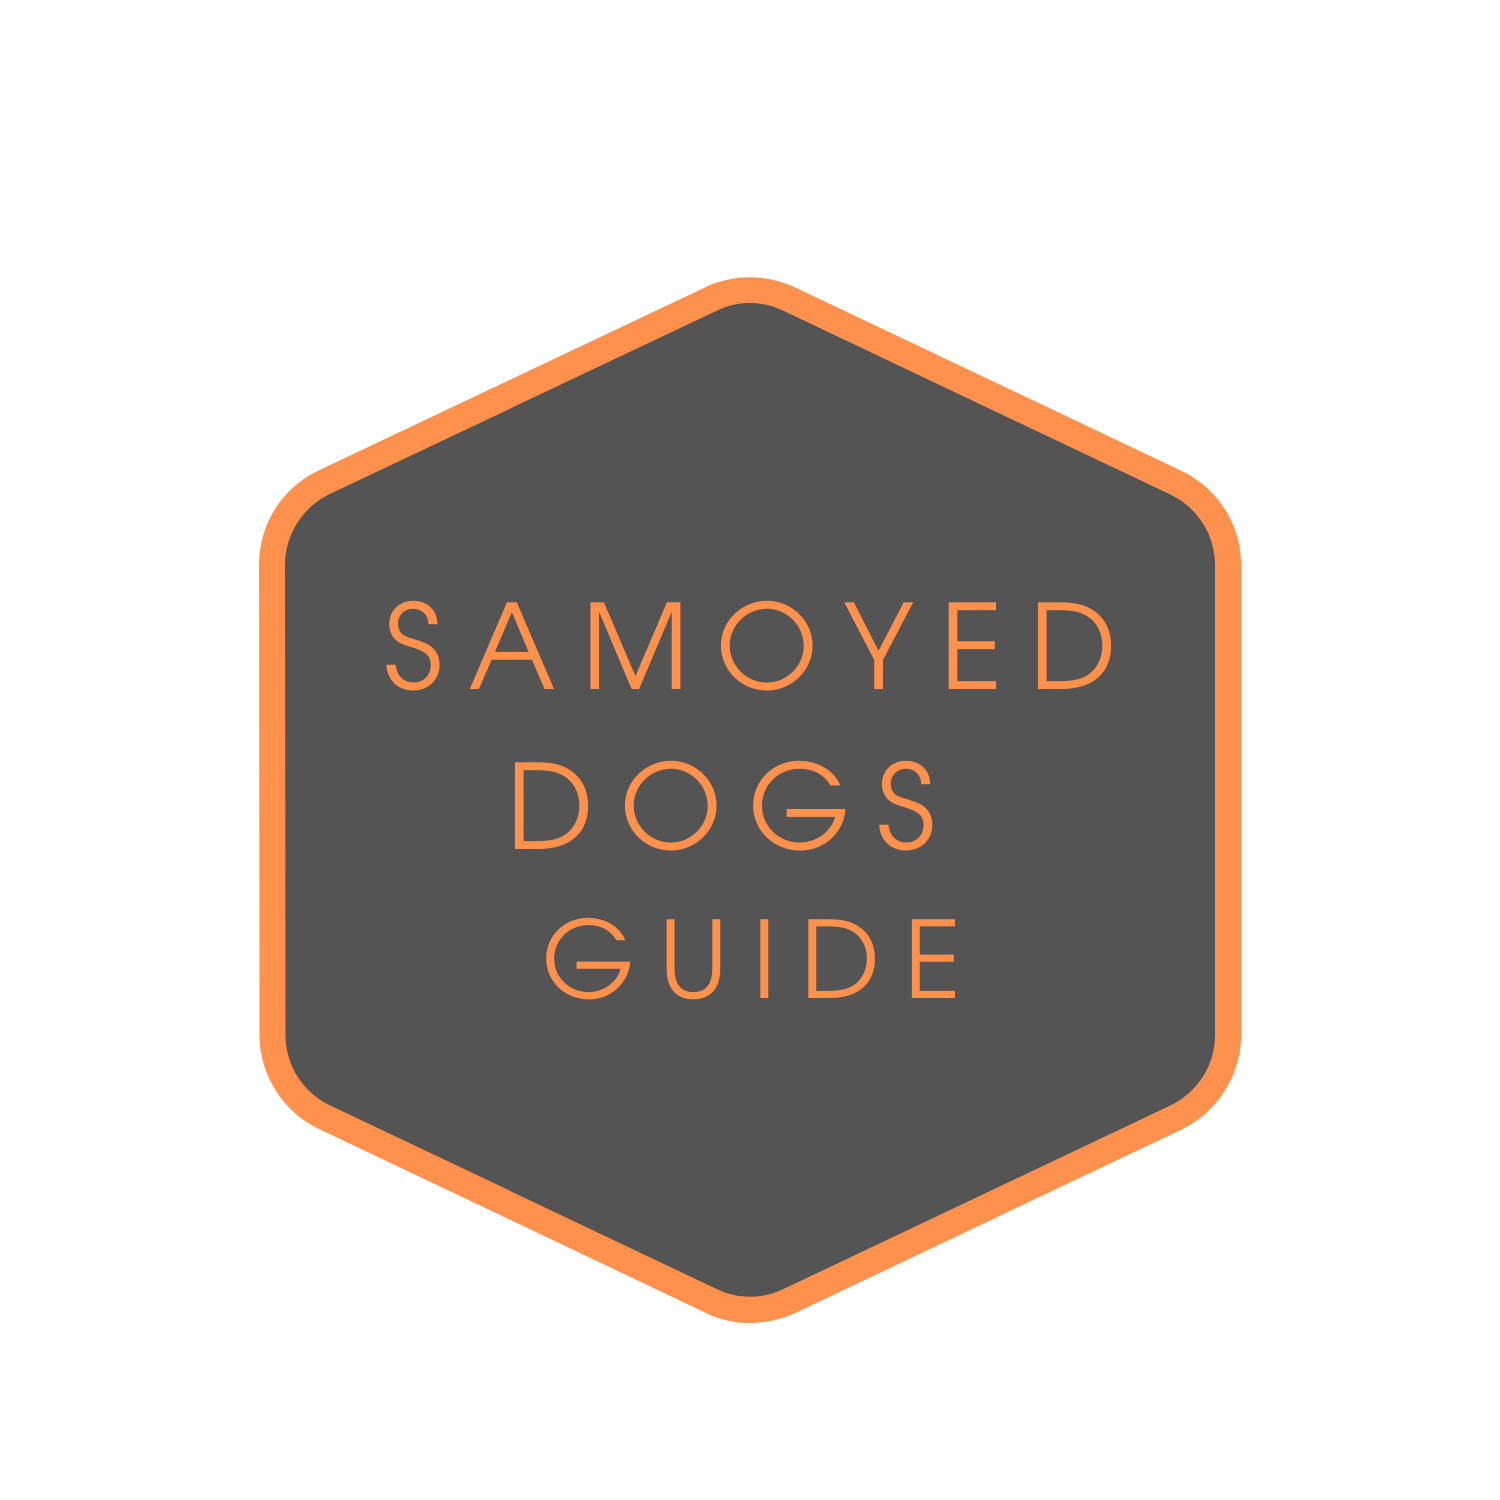 samoyed dogs guide